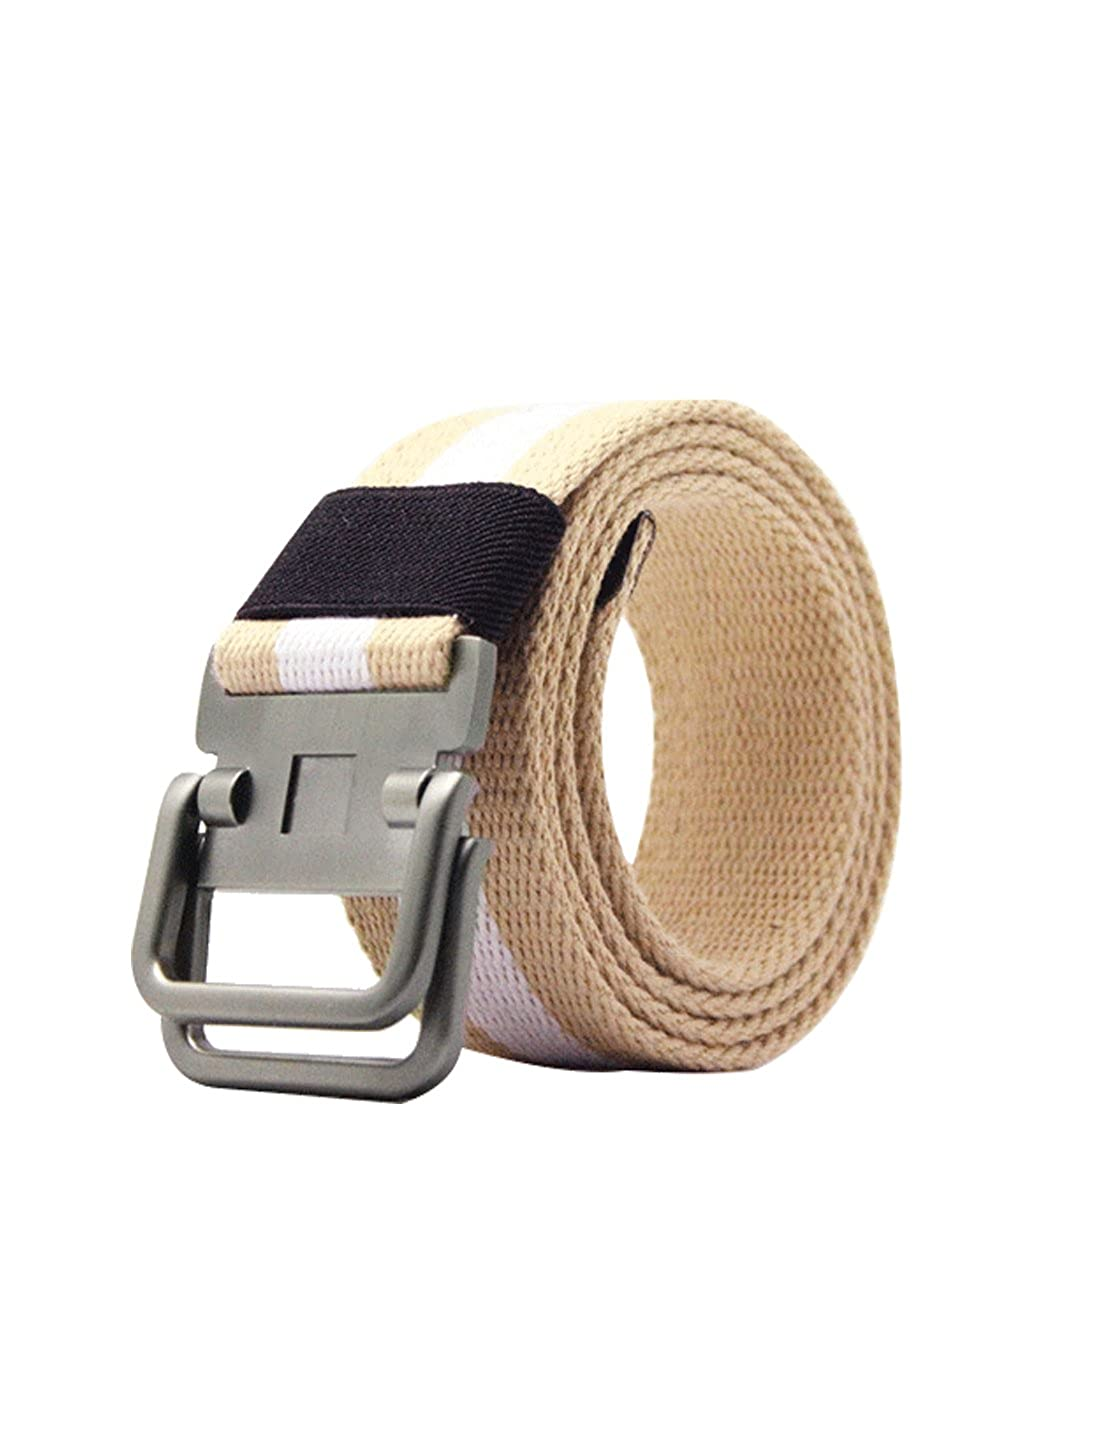 uxcell Unisex Canvas Web Belt with Metal Slide Buckle Width 1 1//2 Inches